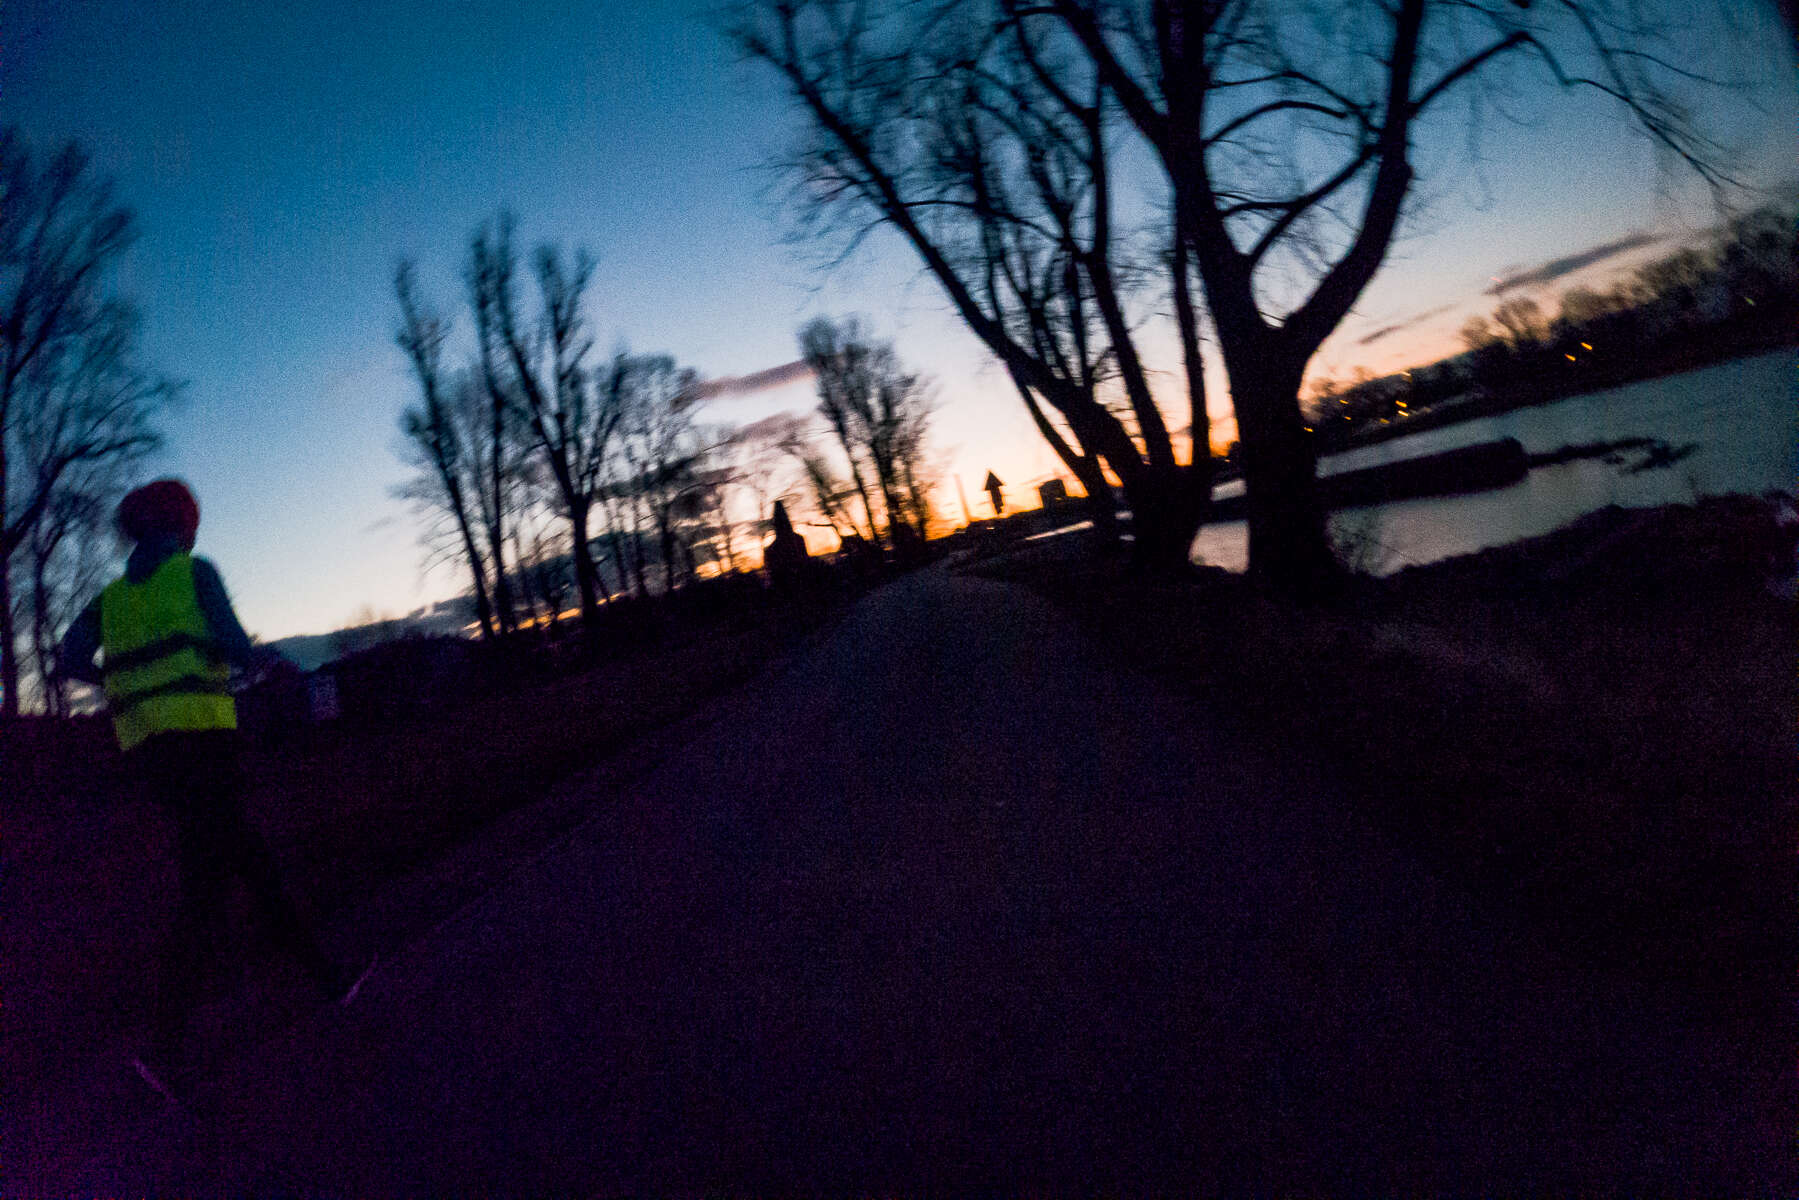 The Vltava riverfront is one of my favorite running spots in Prague. It's almost always free of traffic, and especially in the dawn hours, it's a serene nature retreat without leaving the city. Here, I approach a fellow runner as the sun is beginning to rise on my way back home. Prague, Czechia, February 24, 2020.